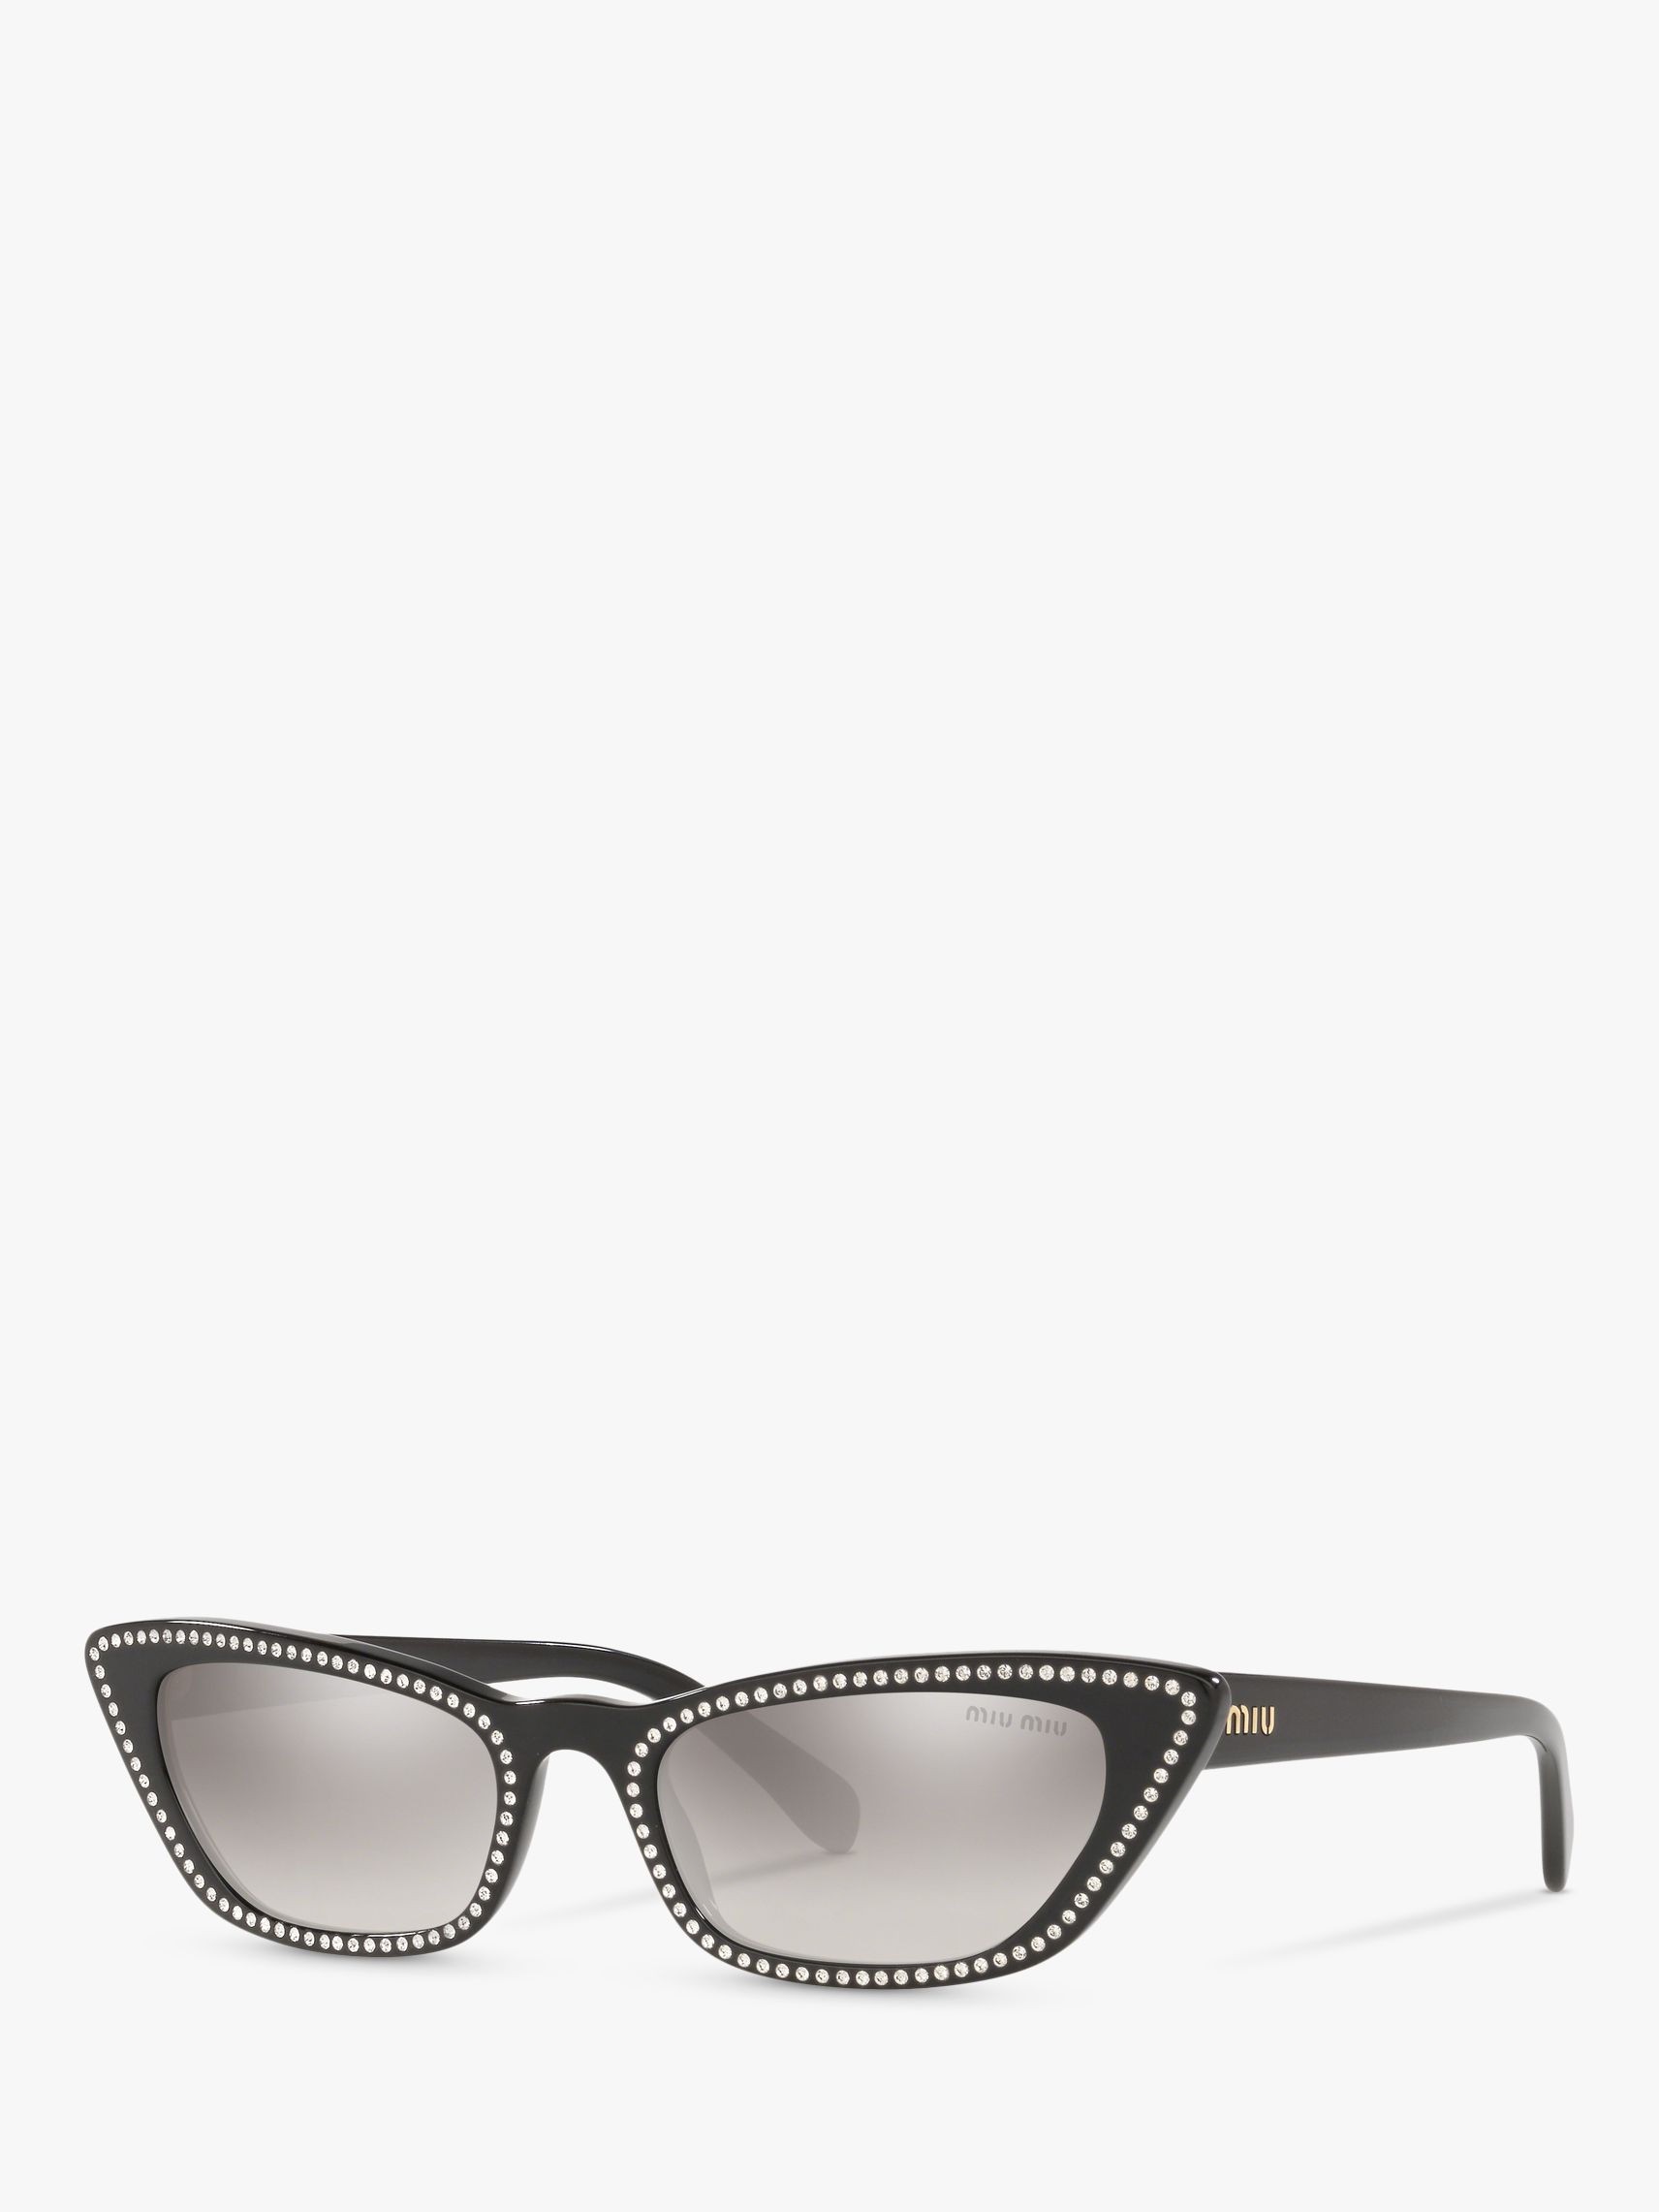 Miu Miu Miu Miu MU 10US Women's Stud Cat's Eye Sunglasses, Black